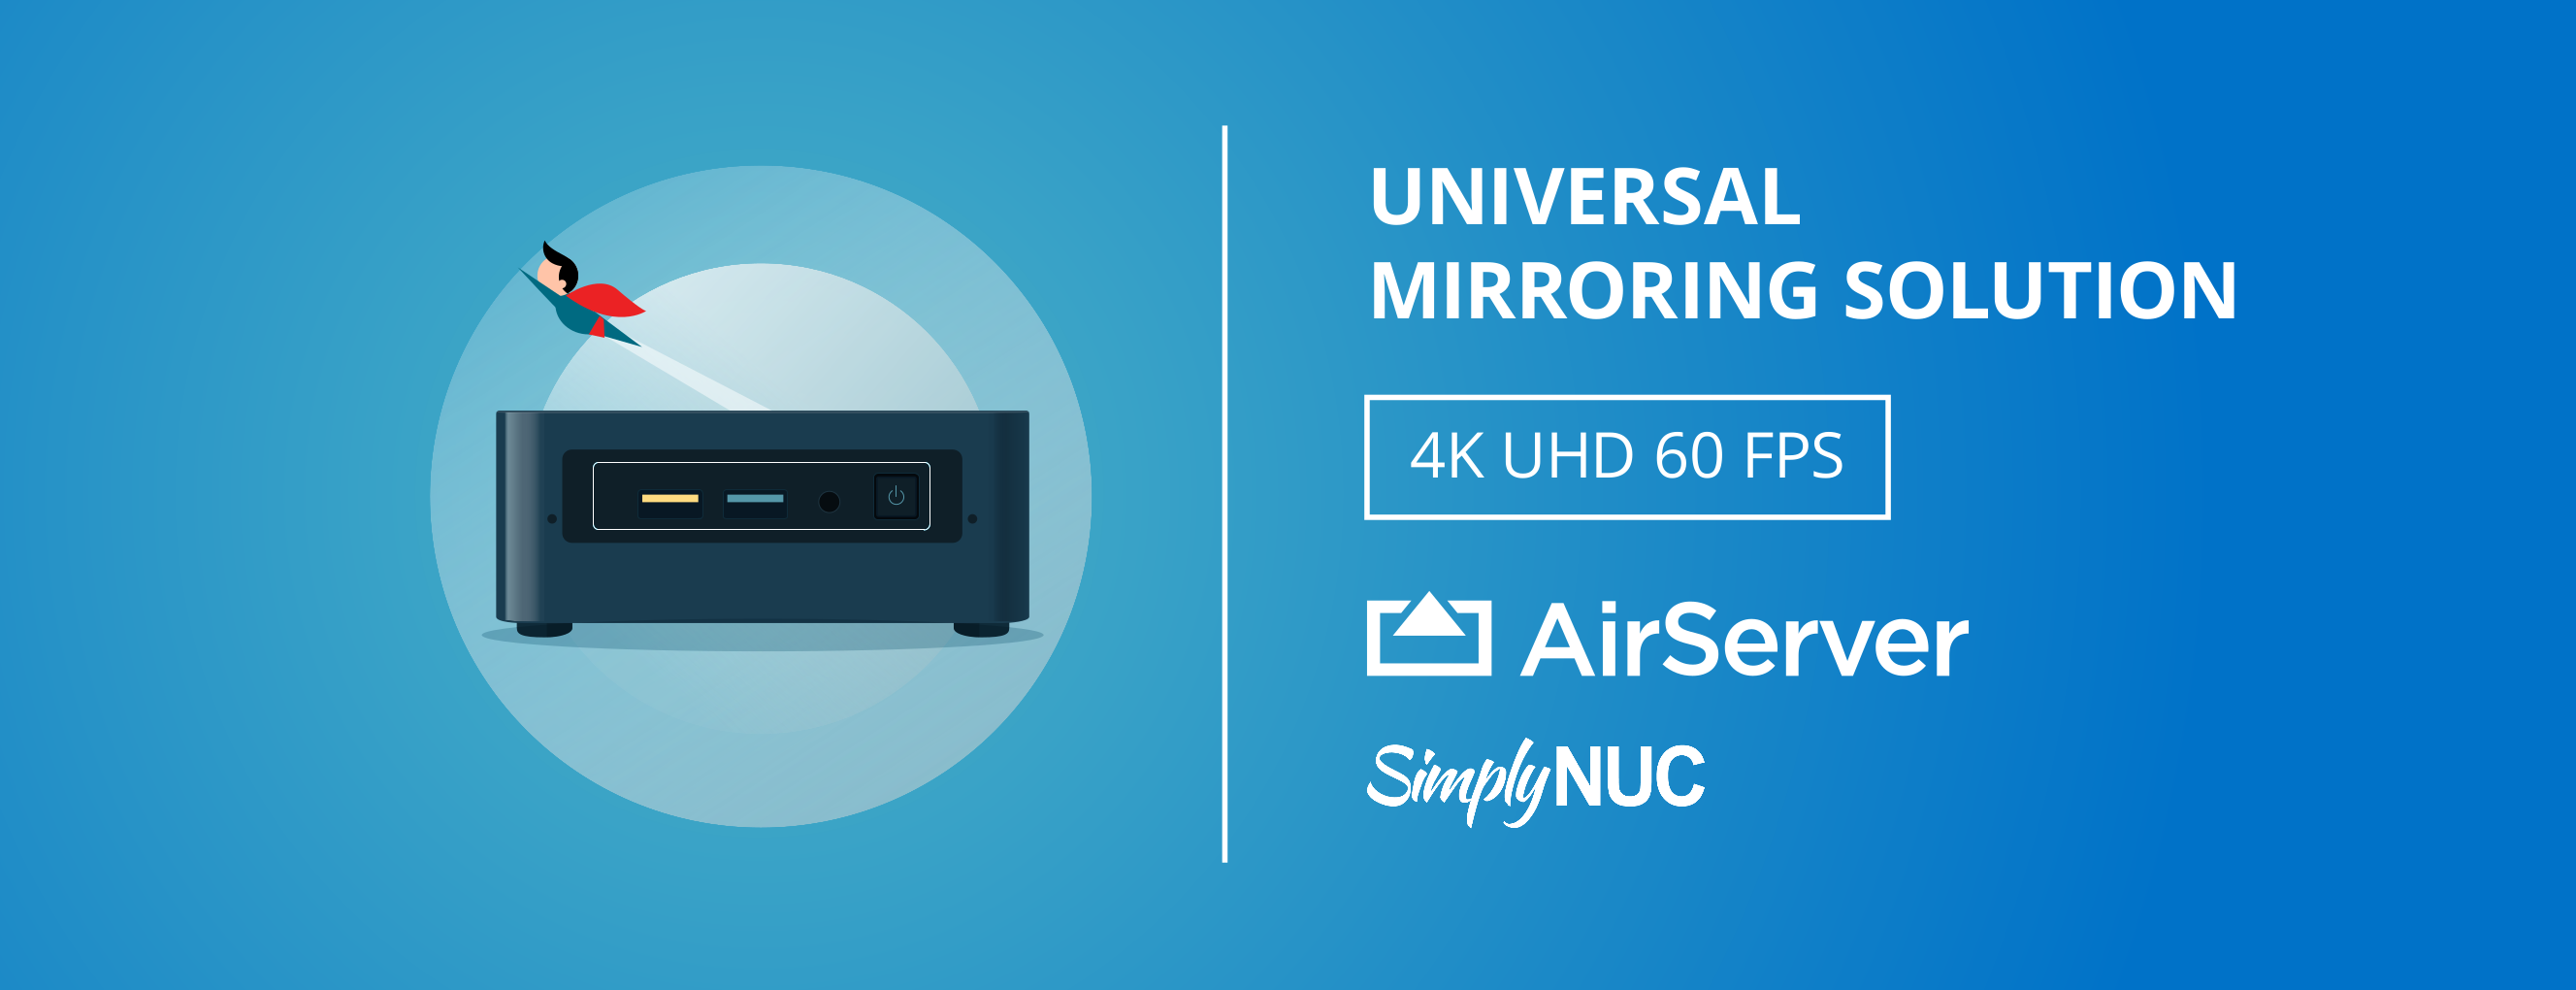 AirServer Solution – Simply NUC